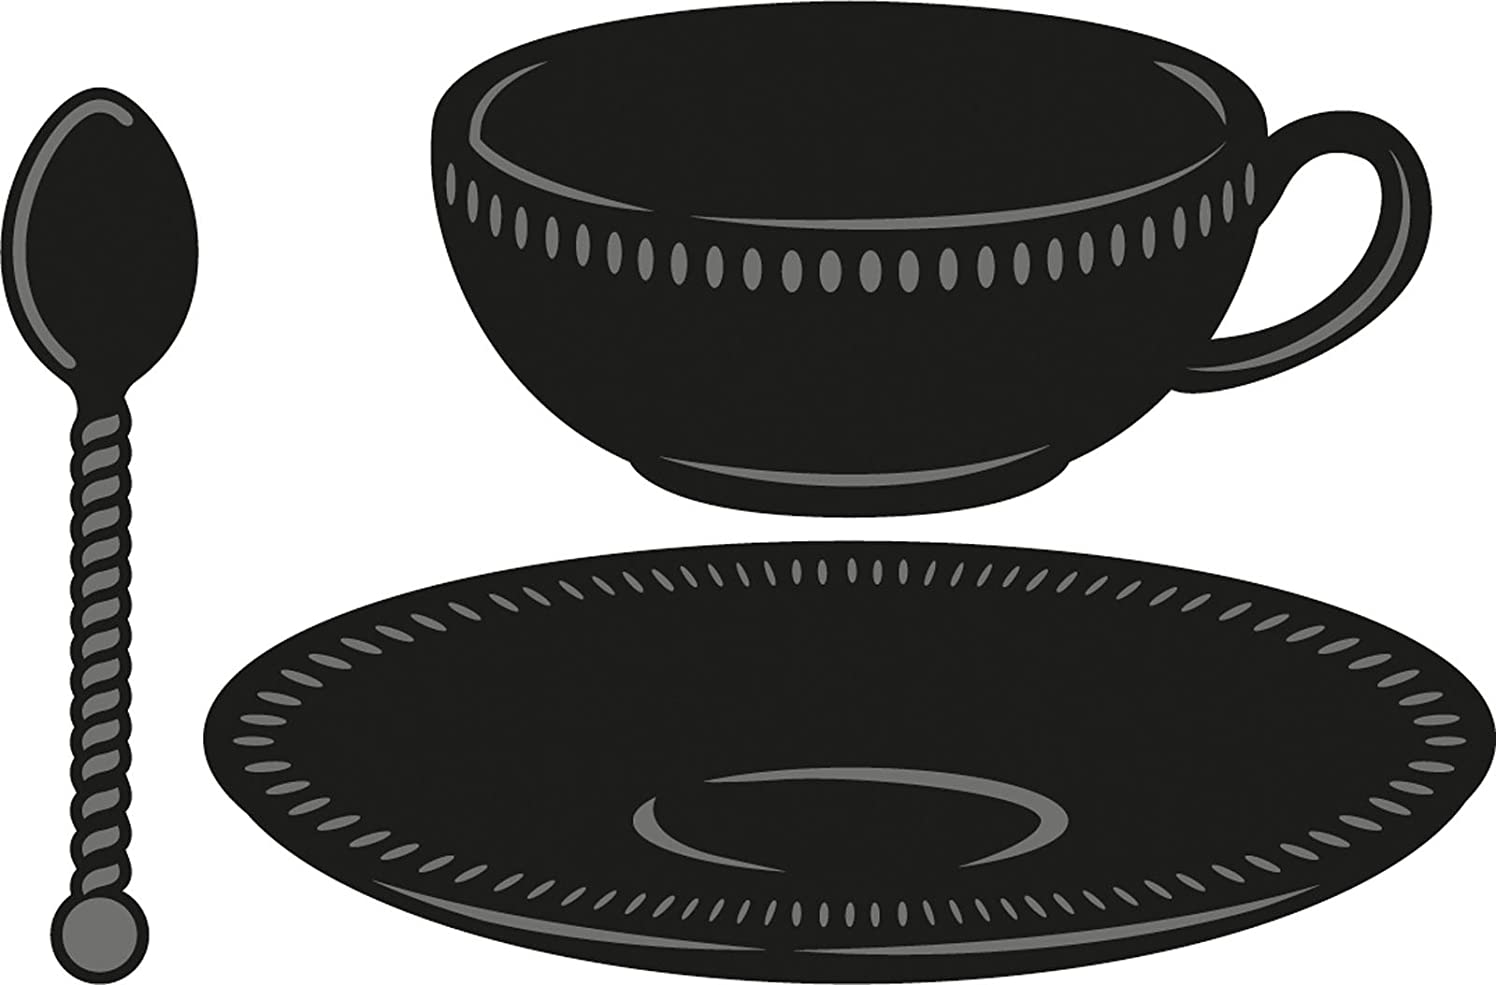 Ecstasy Crafts Marianne Design Craftables Dies, 2.5 by 1.5-Inch, Tea Cup, Saucer, Spoon